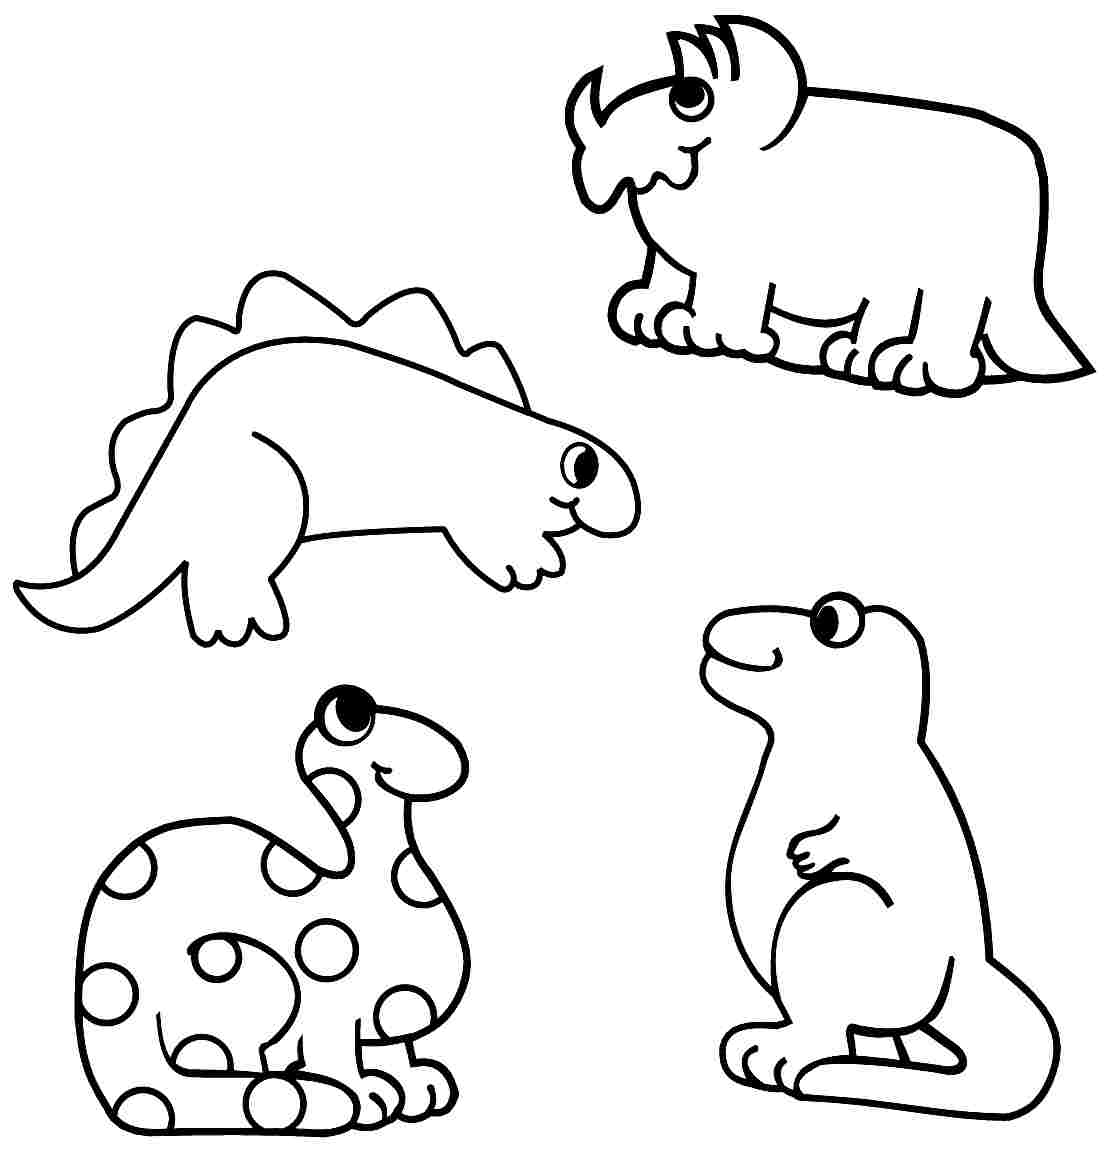 colour in dinosaur pictures dinosaur train coloring pages dinosaurs pictures and facts dinosaur colour pictures in